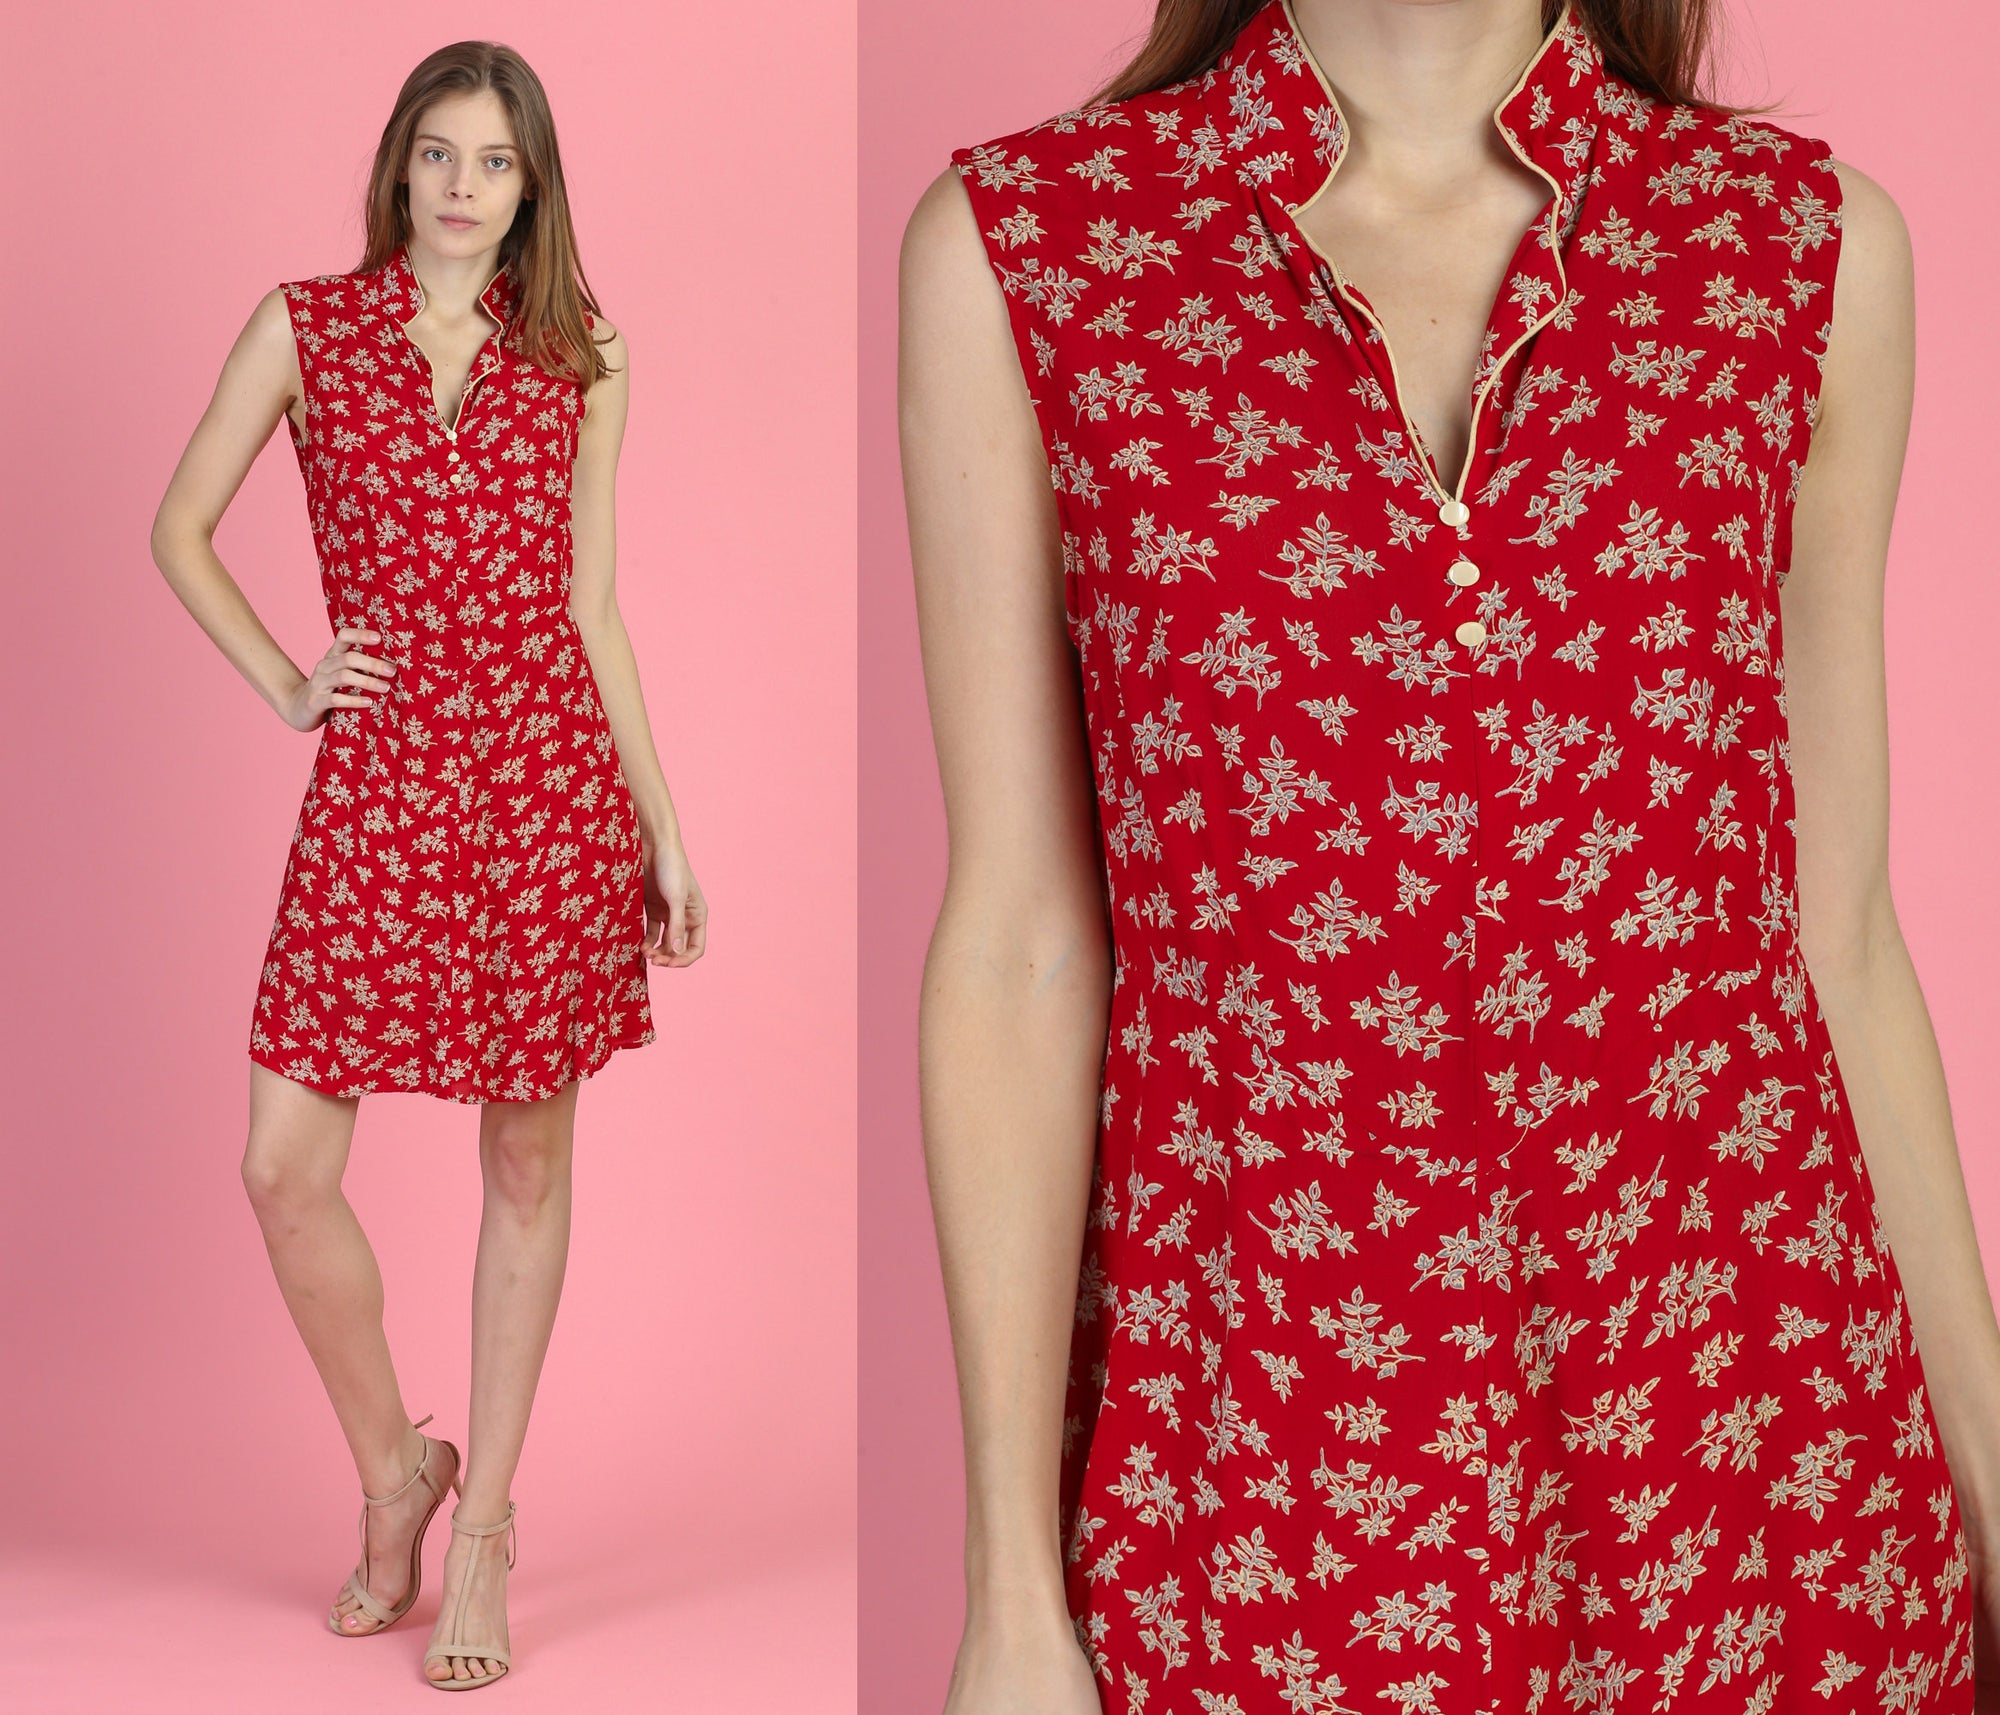 90s Red Floral Mini Dress - Large